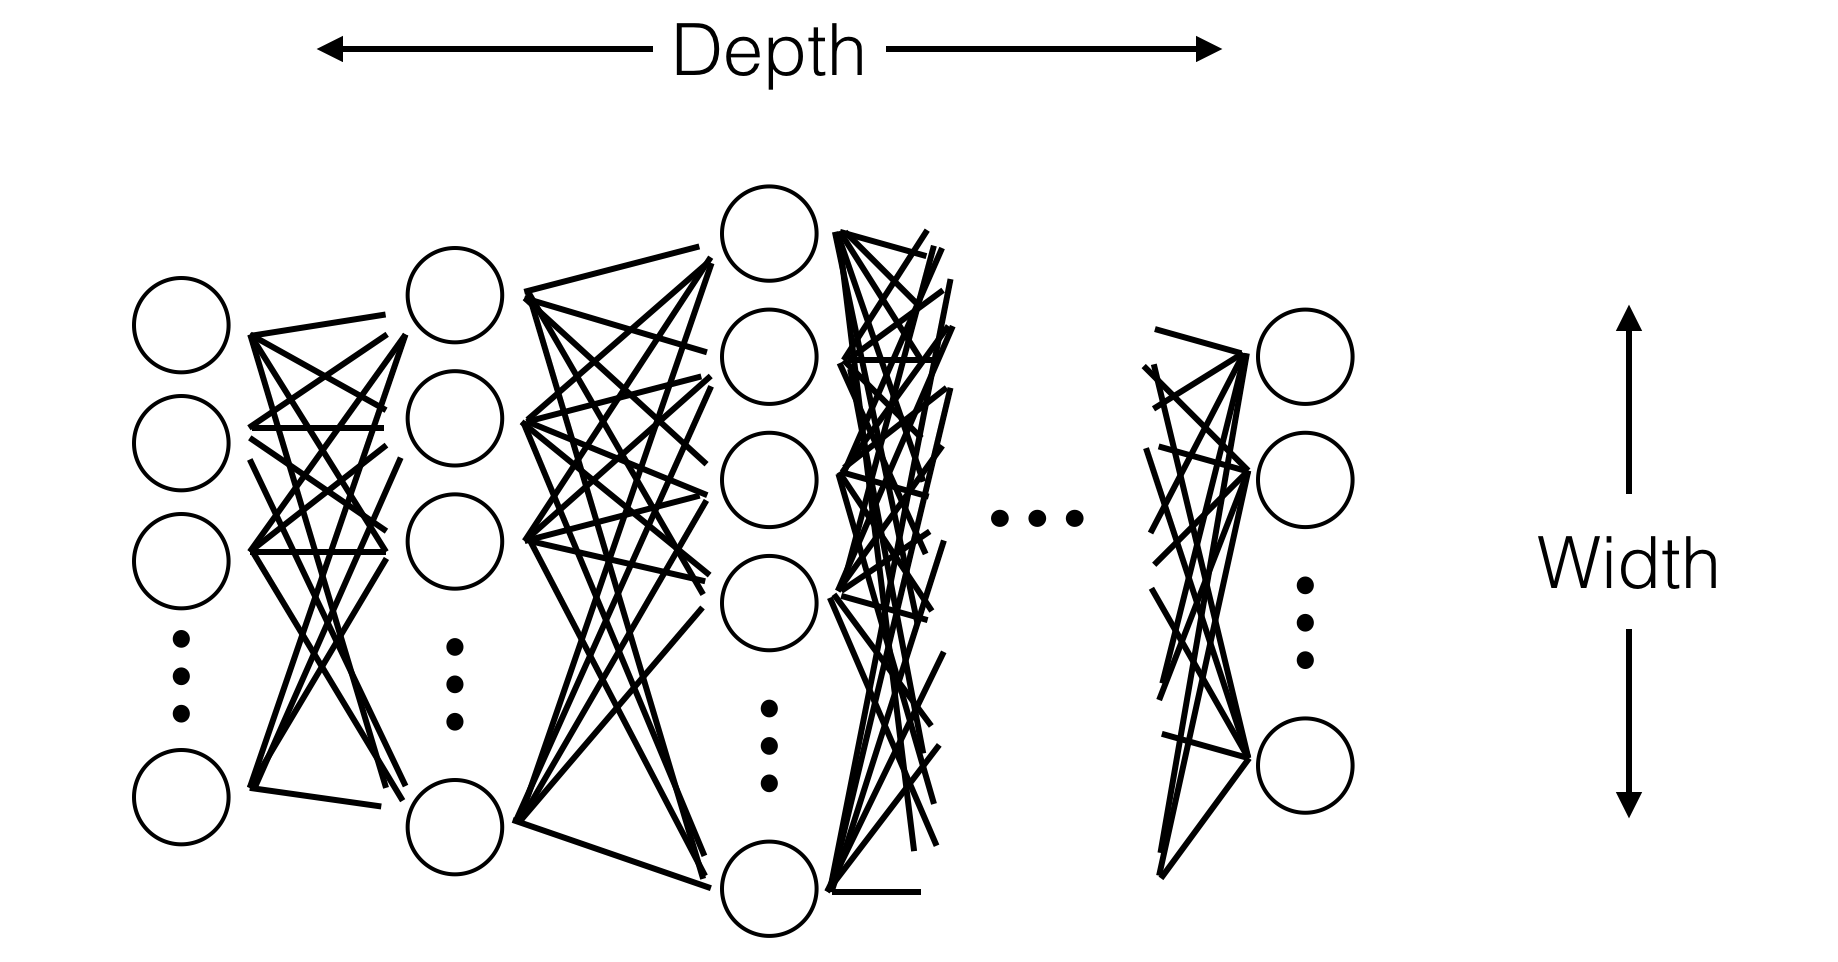 Implementing Backprop Network Or Circuit Composed Of A Sequence L Networks Connected In Part The Inspiration For This Hierarchical Layered Architecture Comes From Biological Neural Particular Neocortex